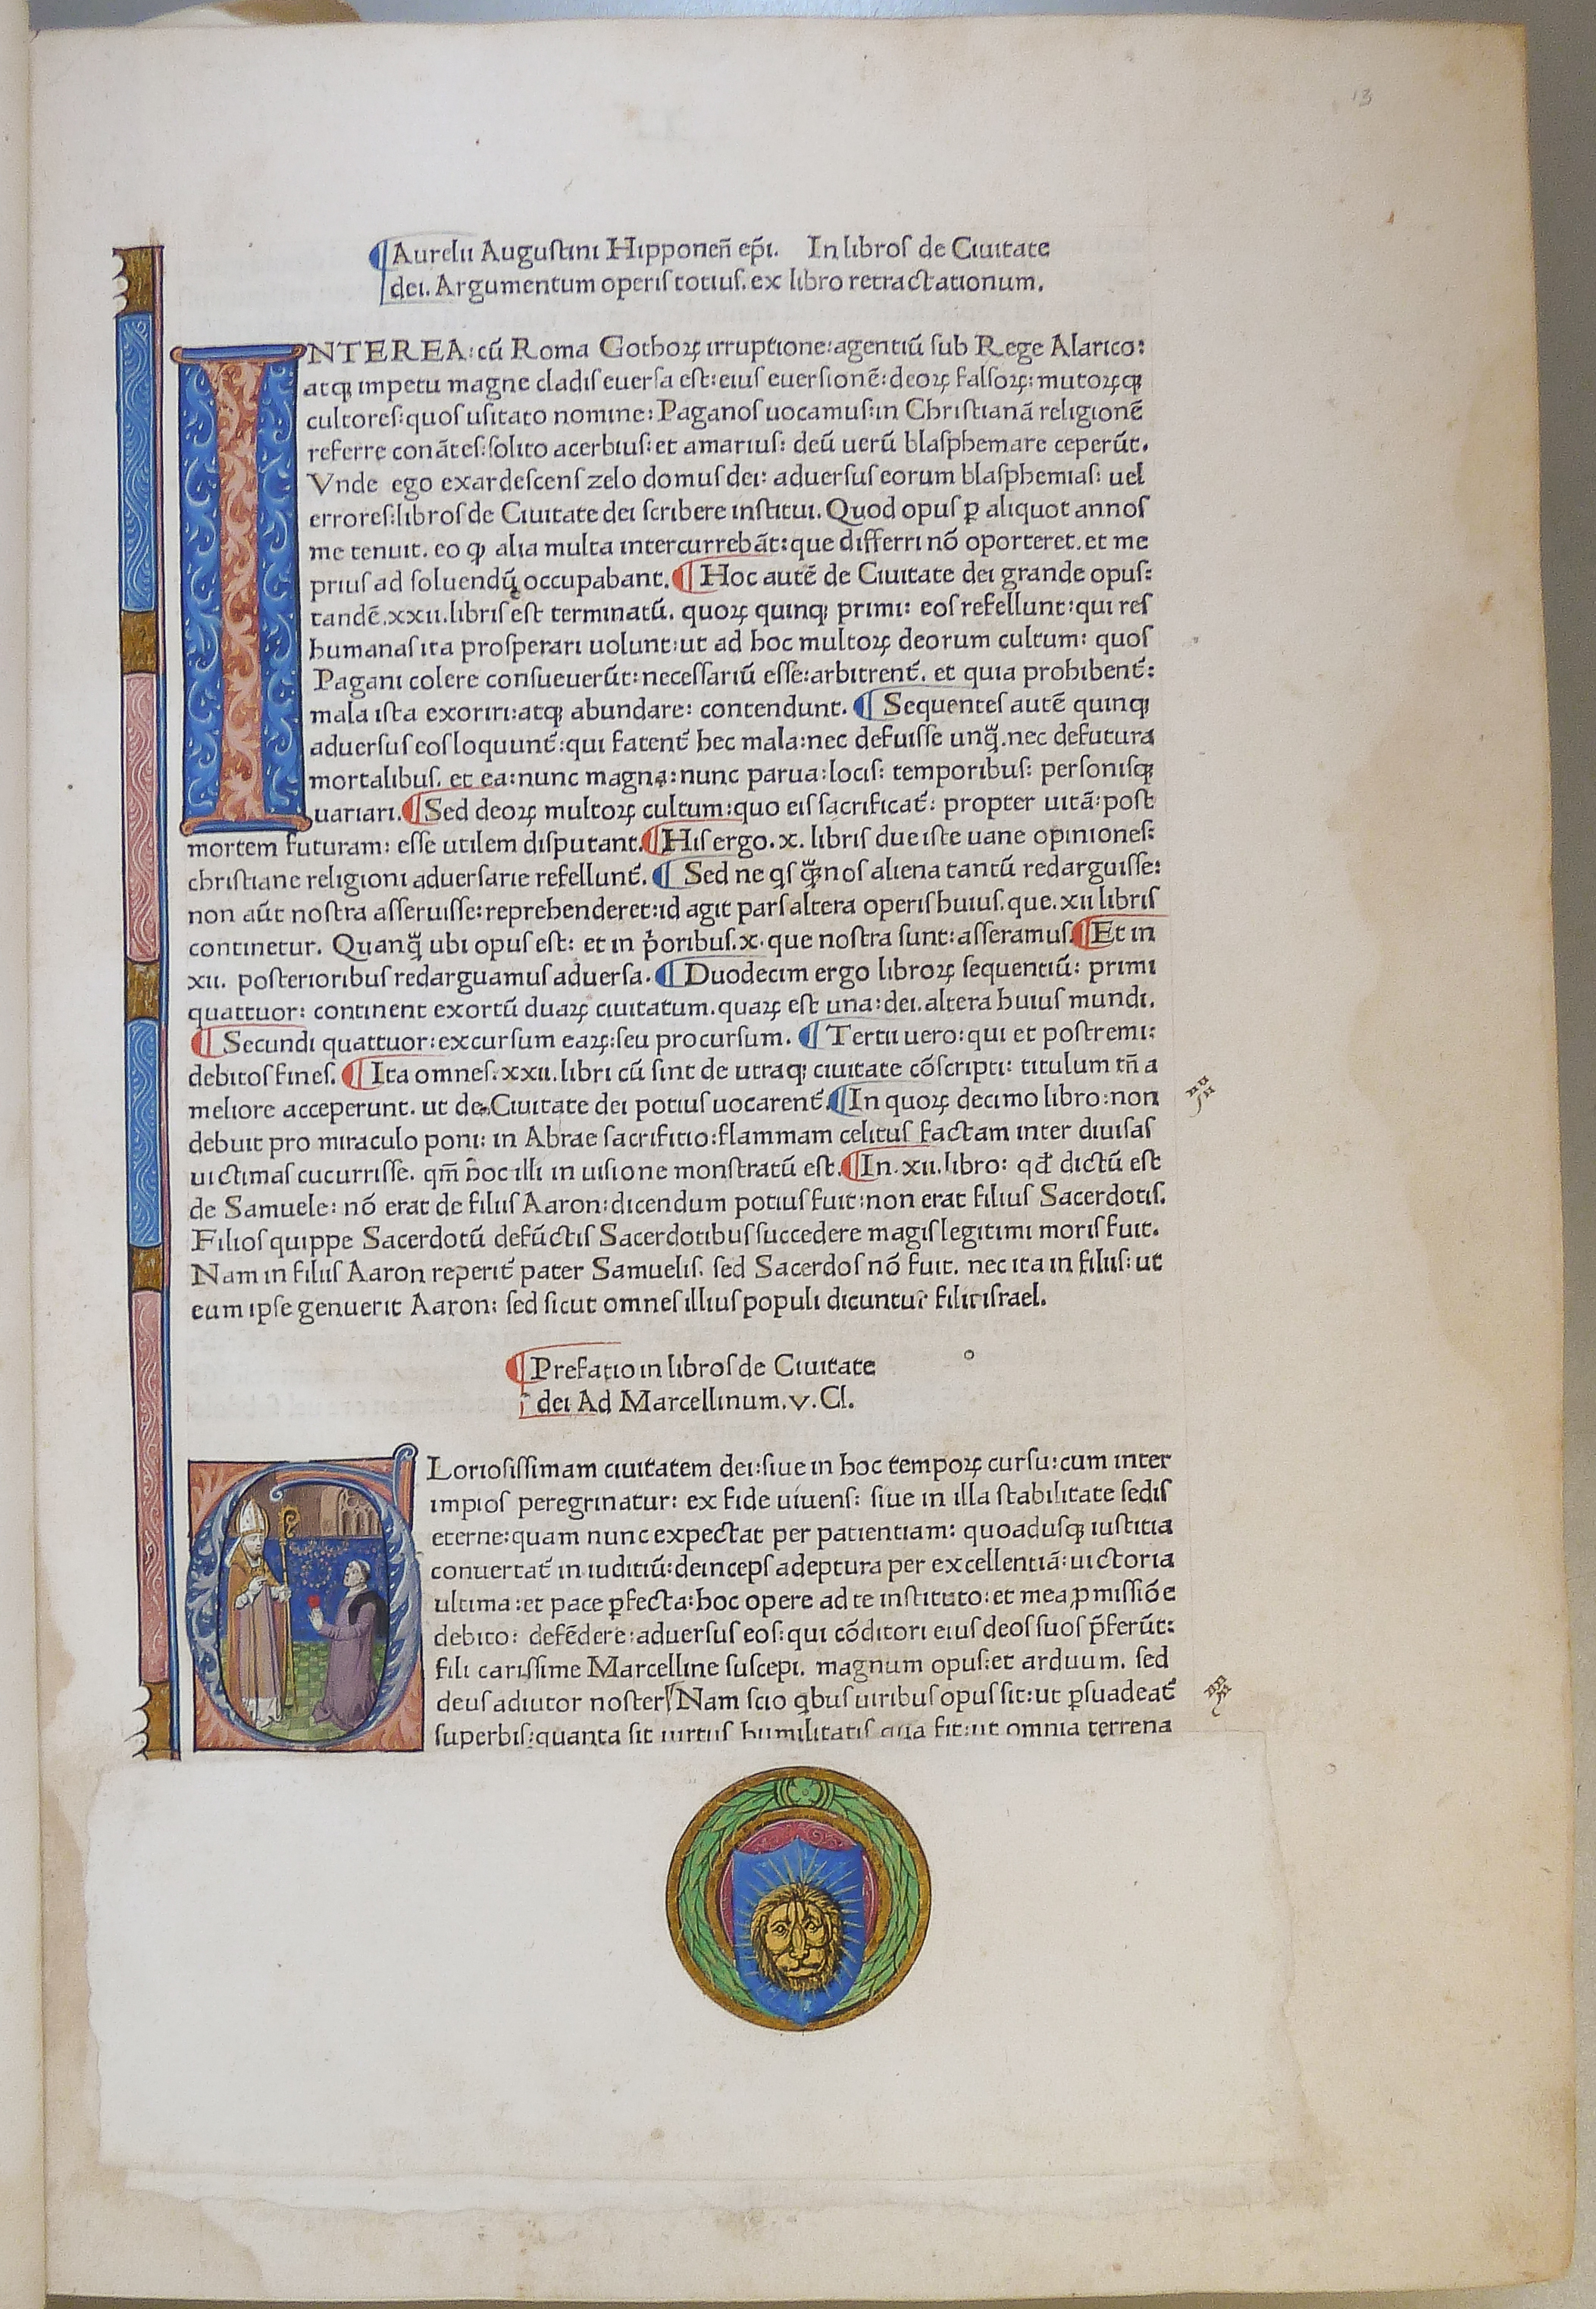 Penn Libraries call number: Inc A-1232 Folio